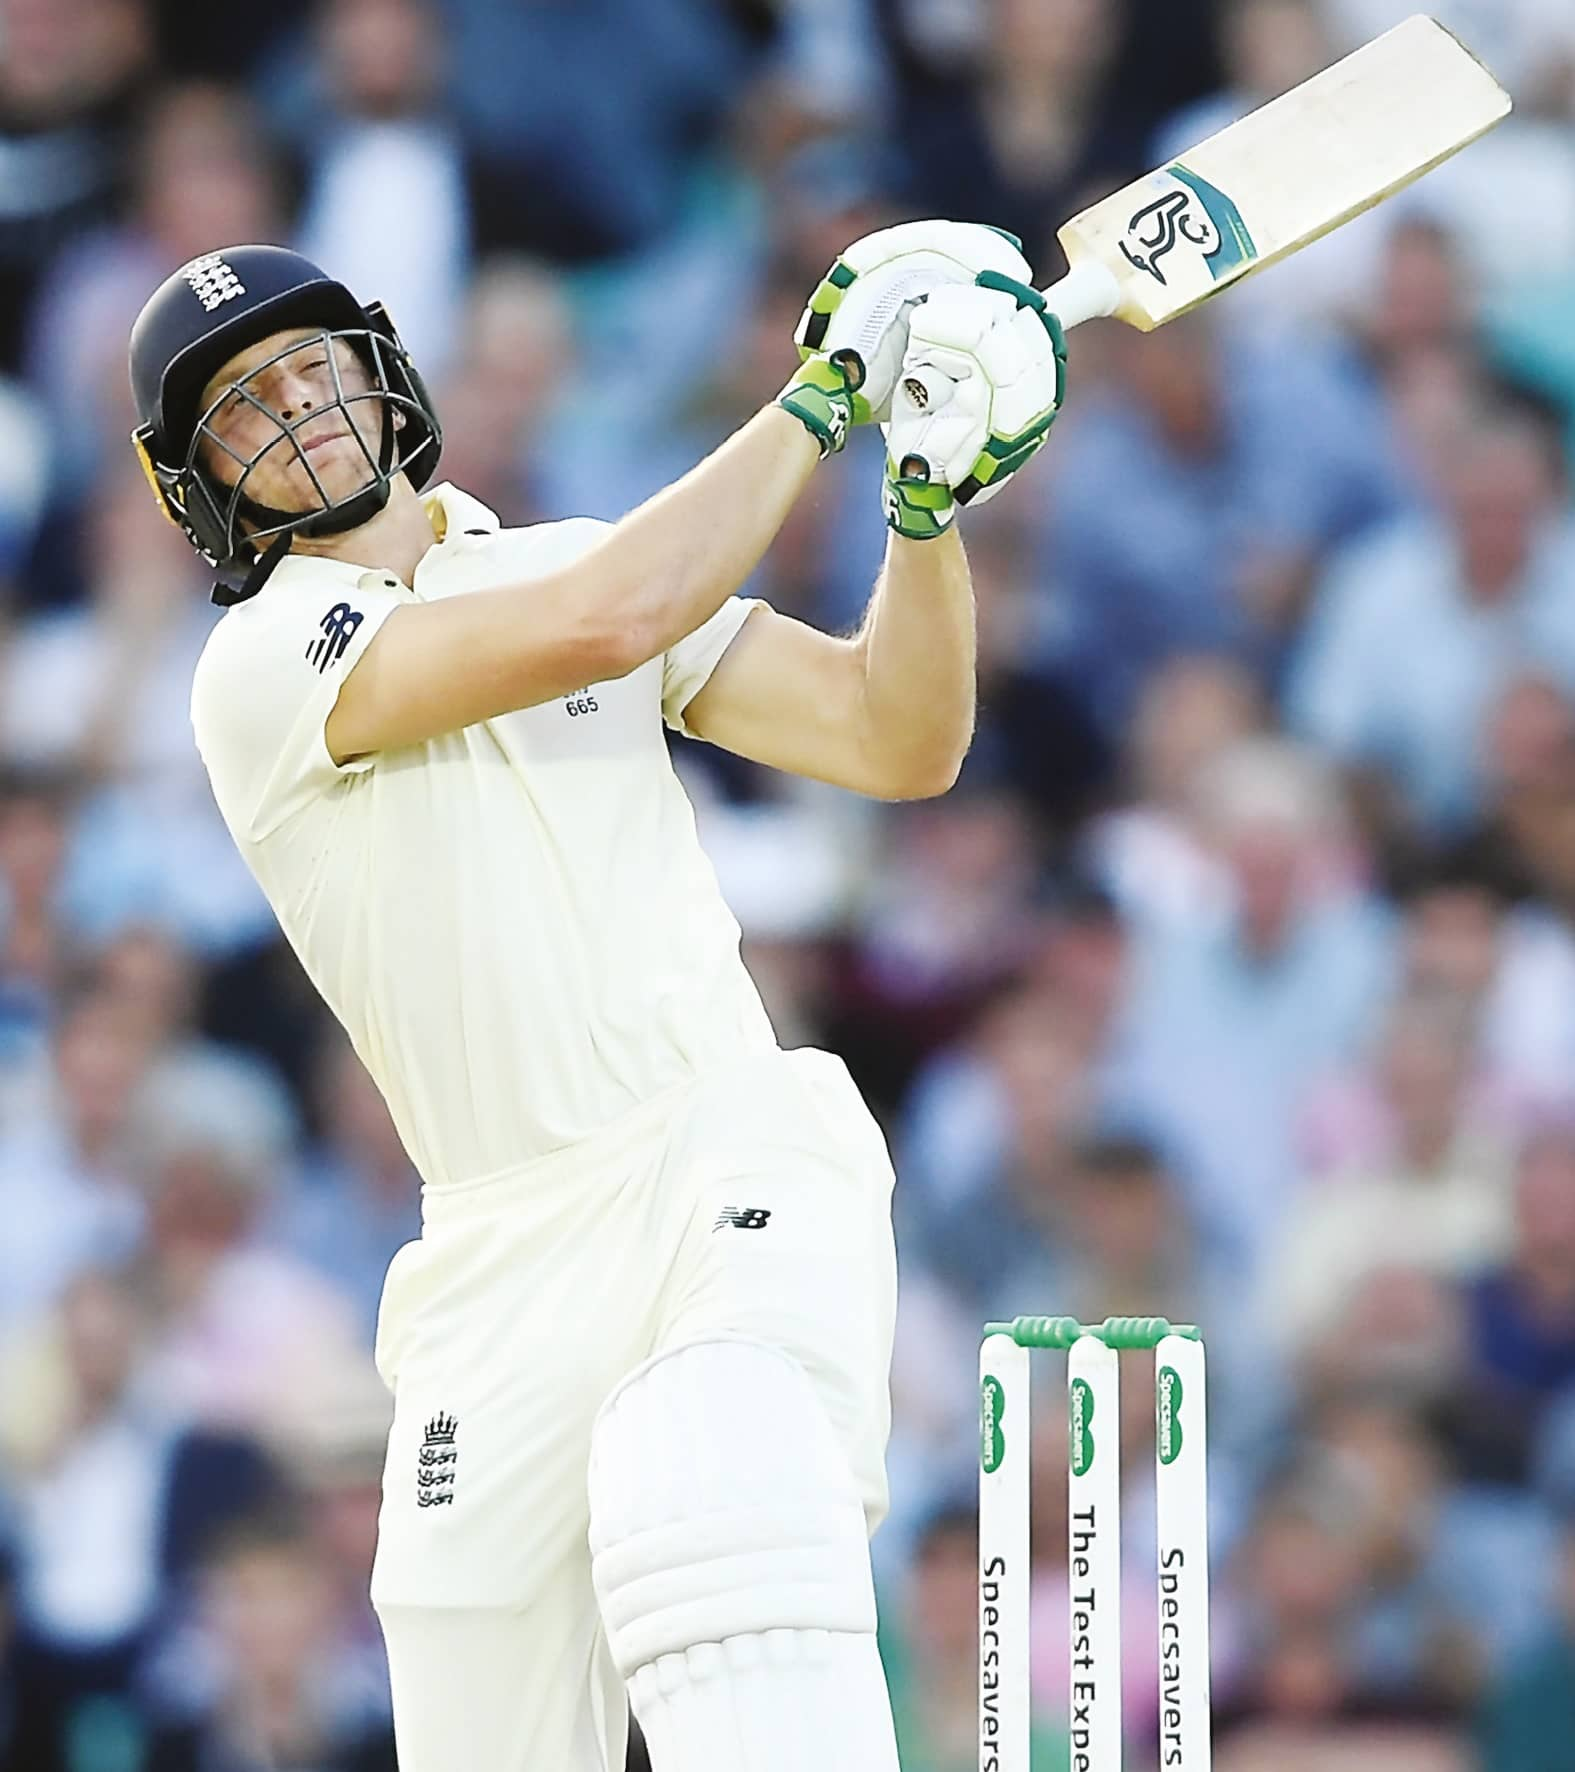 England Must Curb The White Ball Shots For Test Success